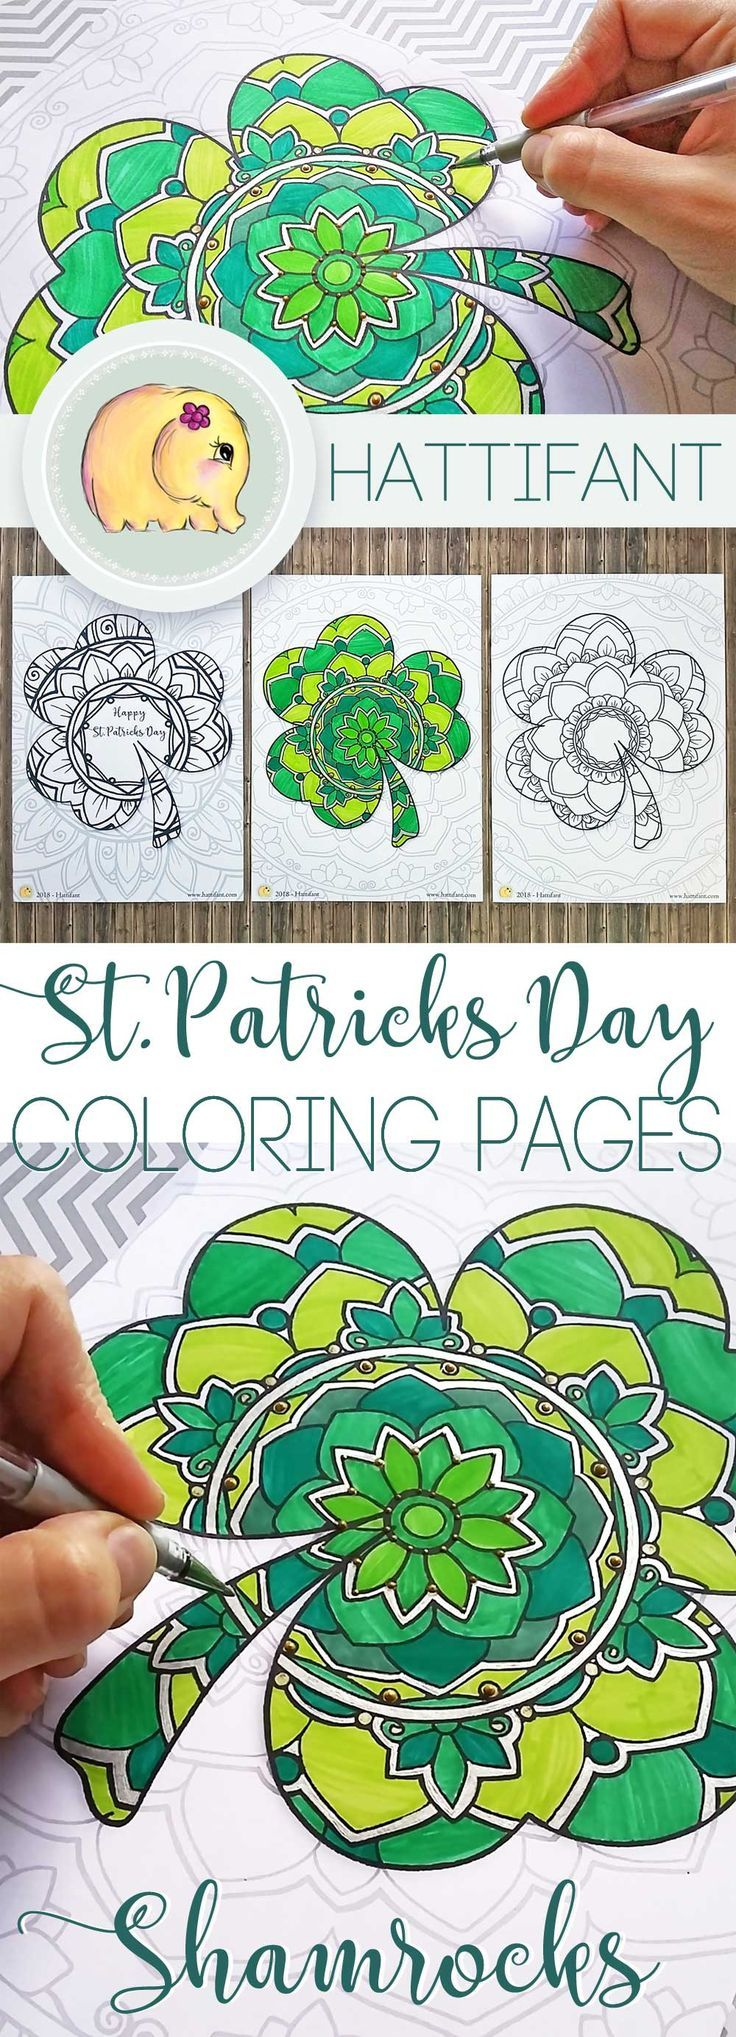 614 best Colouring Pages images on Pinterest | Coloring sheets ...